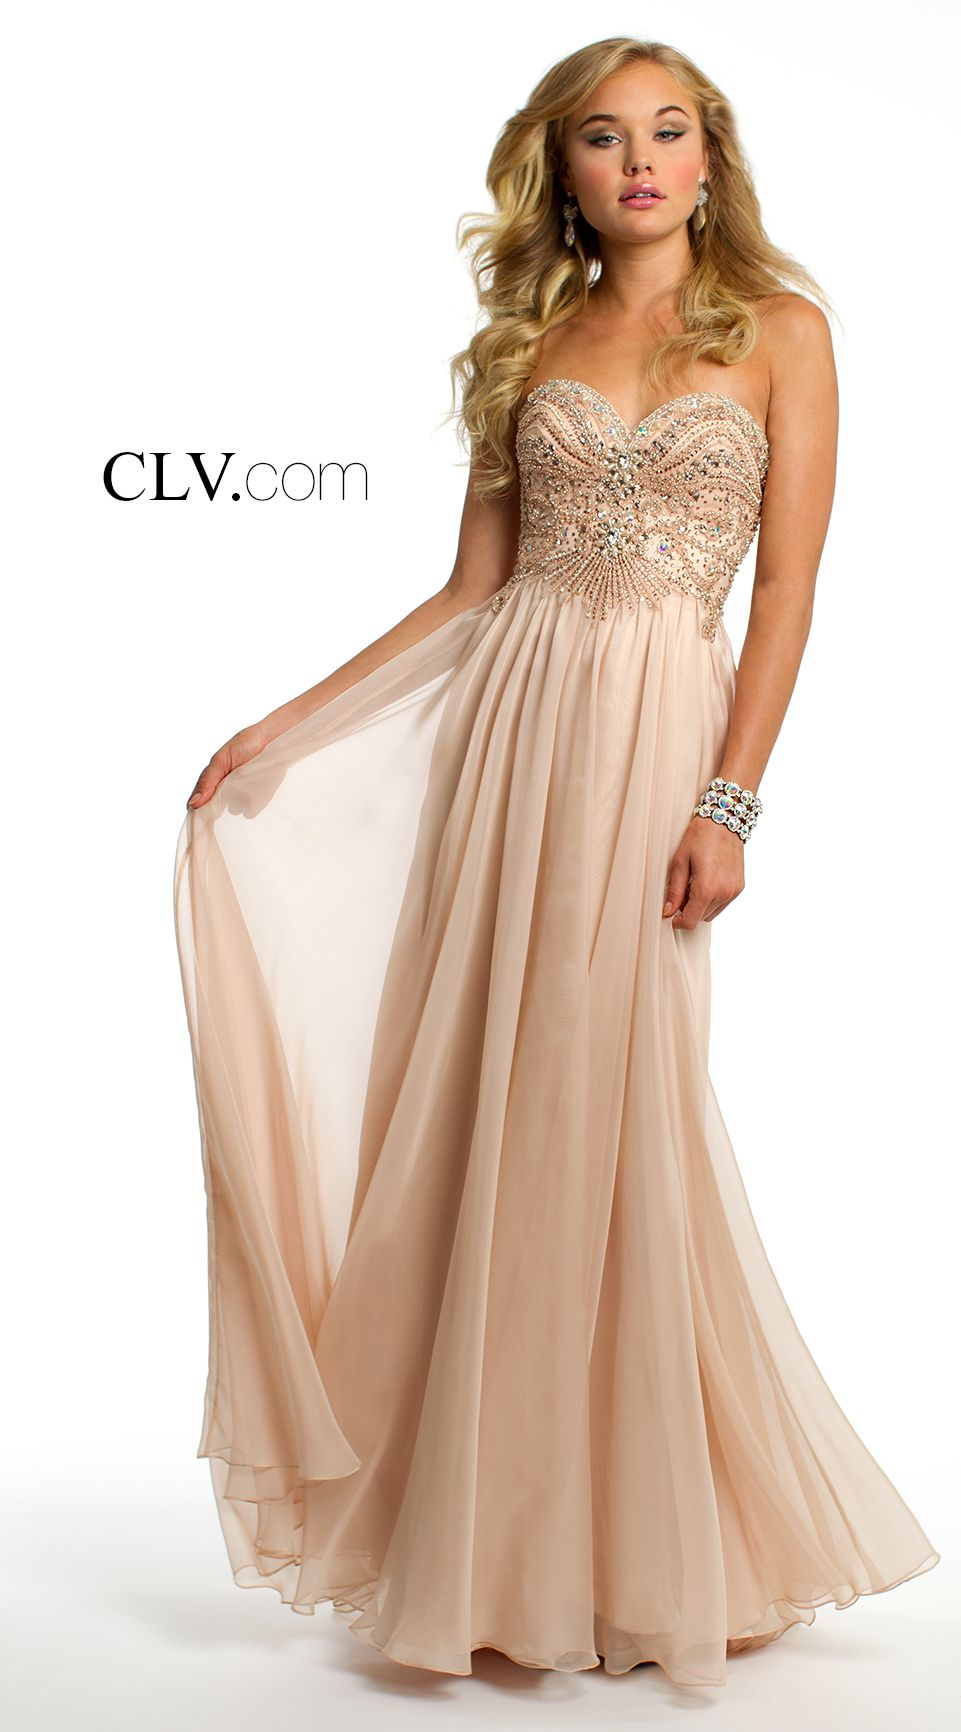 Camille La Vie Long Evening Gowns and Party Dresses | HOLIDAY GLAM ...